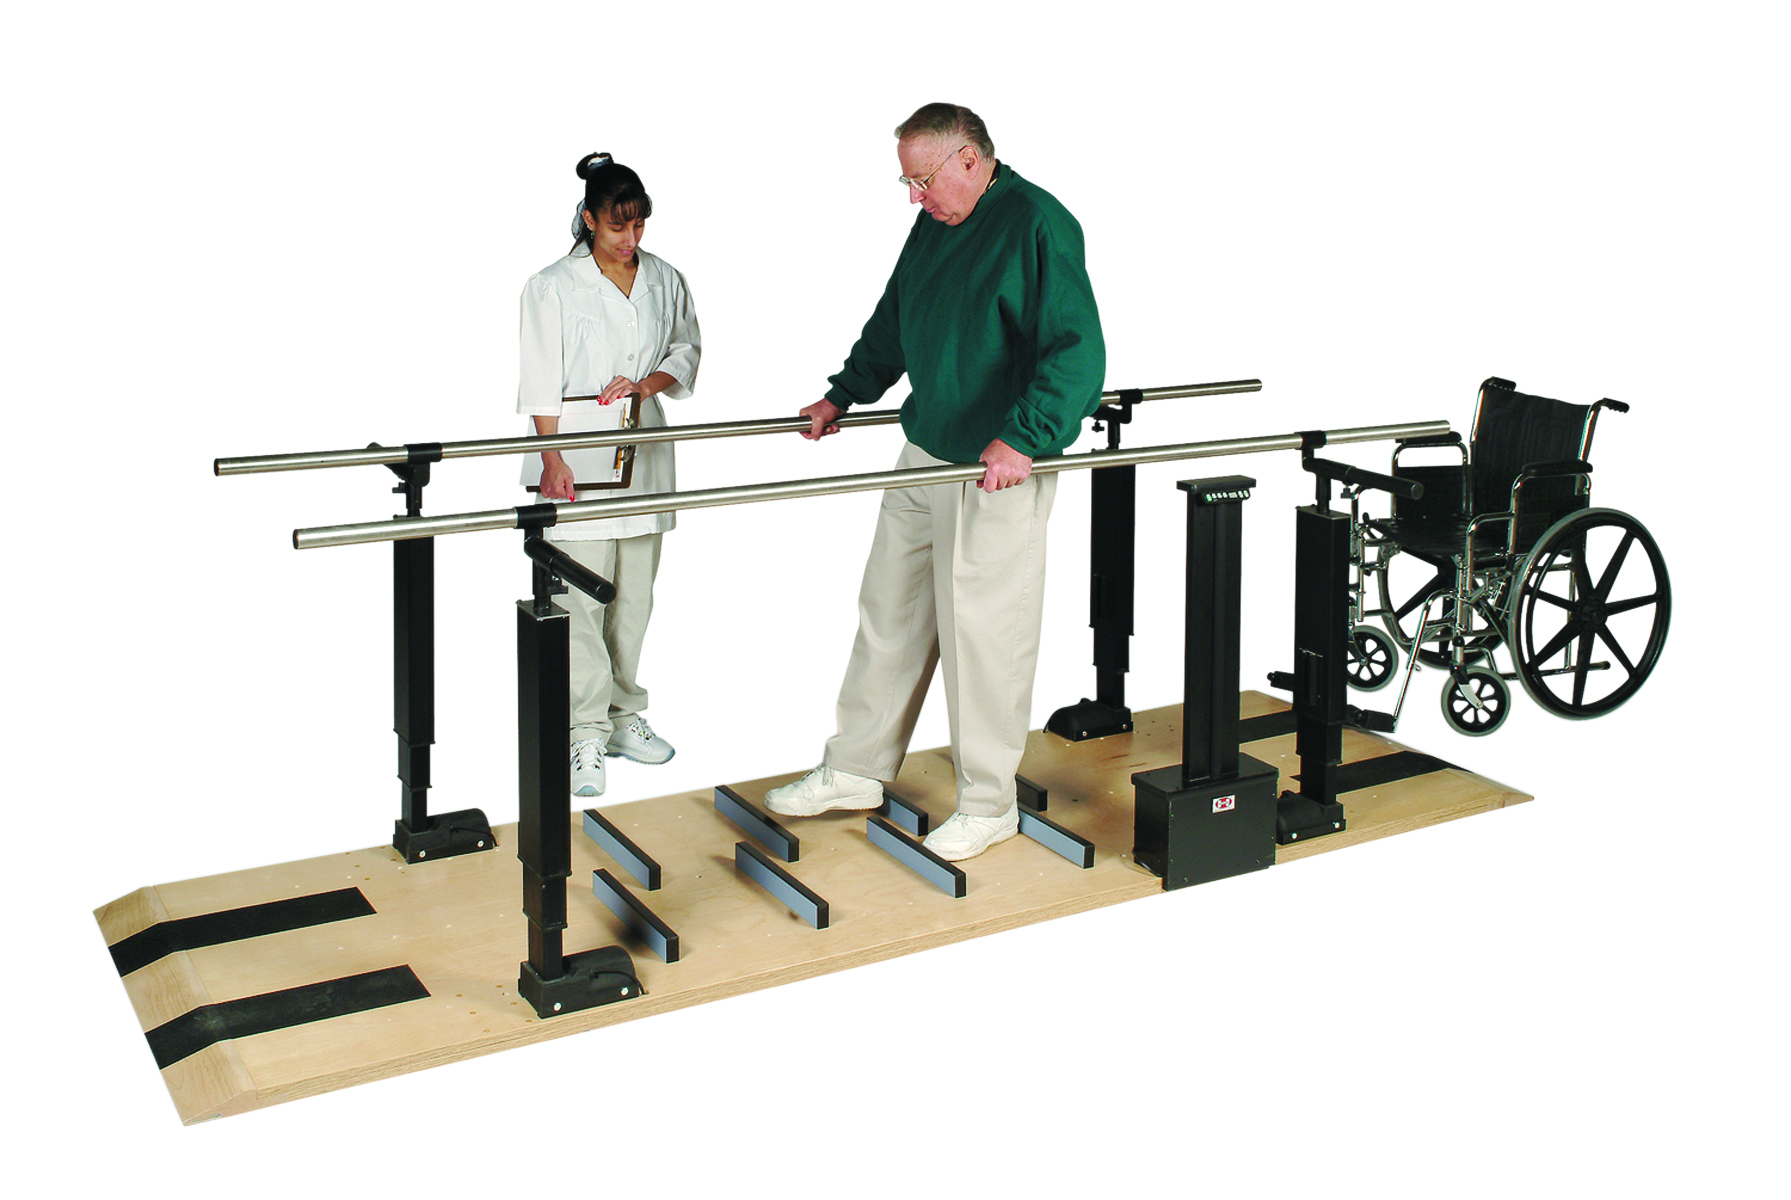 ambulation-training.jpg